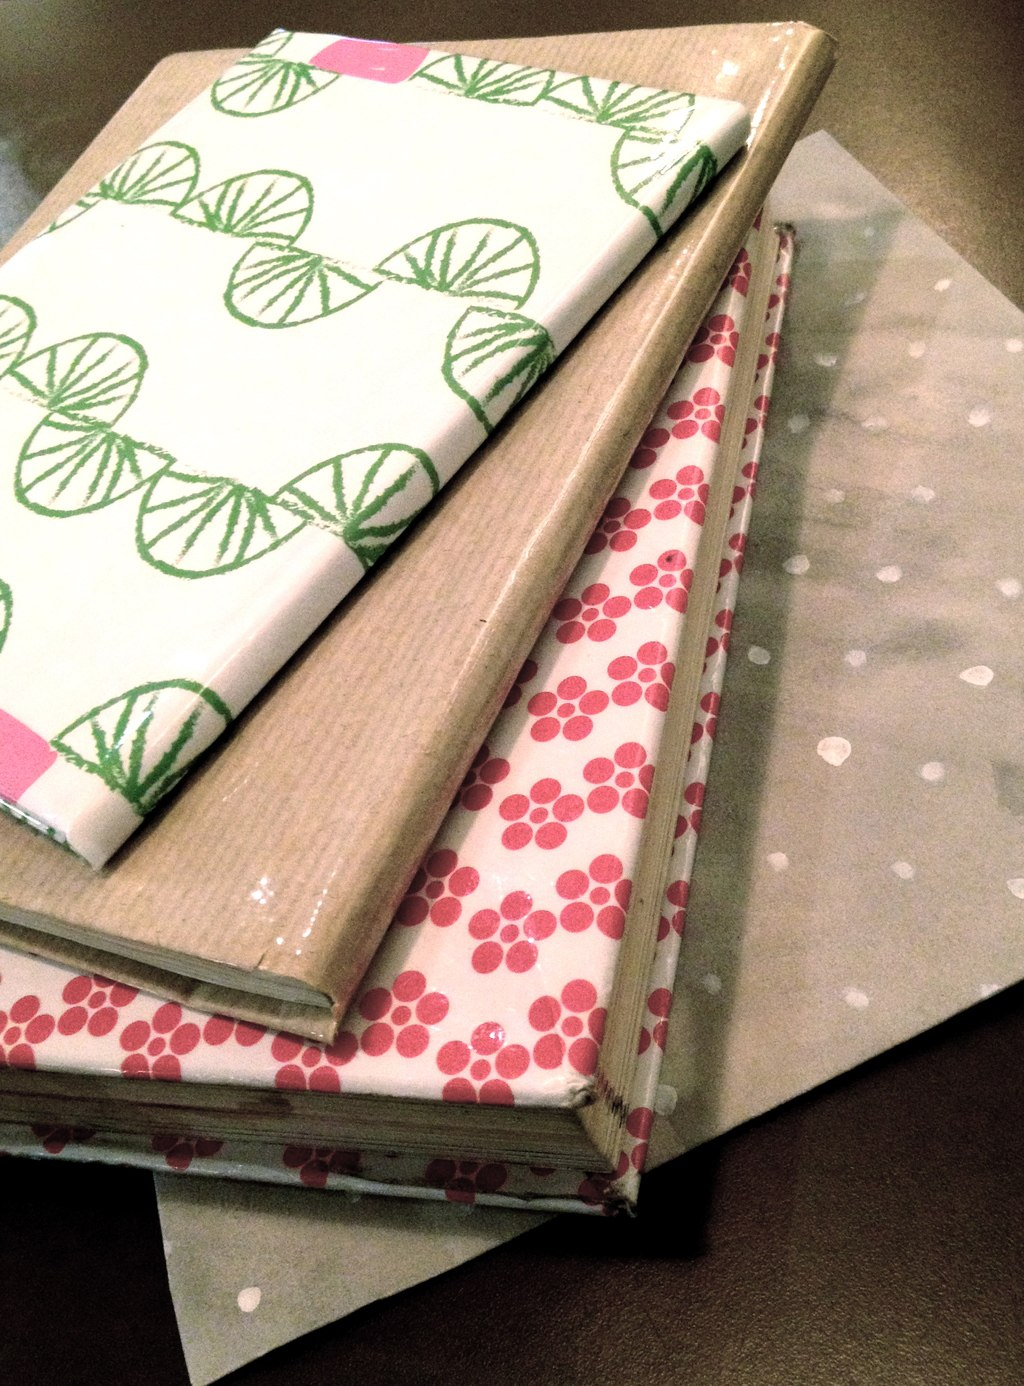 Book Cover With Pictures : Protective book cover friendly nettle